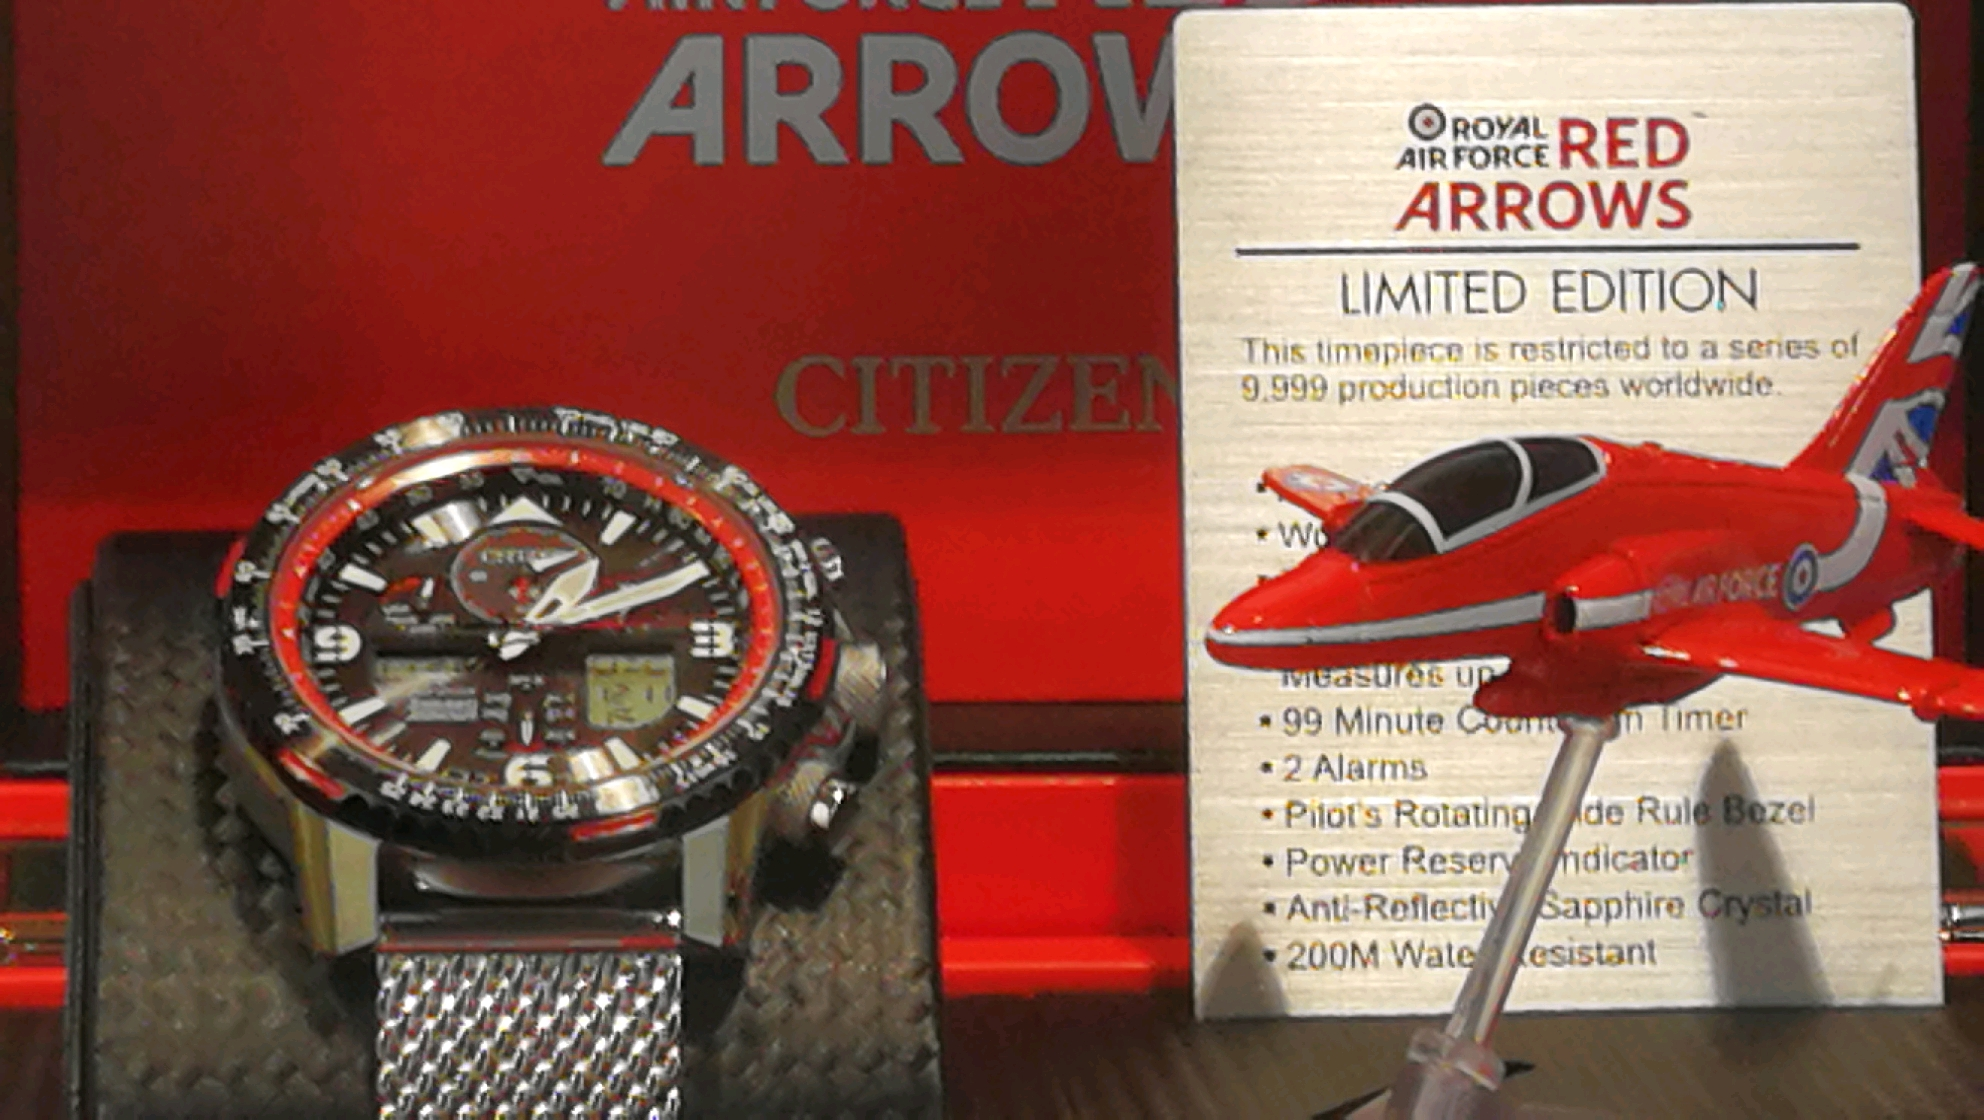 Red arrow watch picture